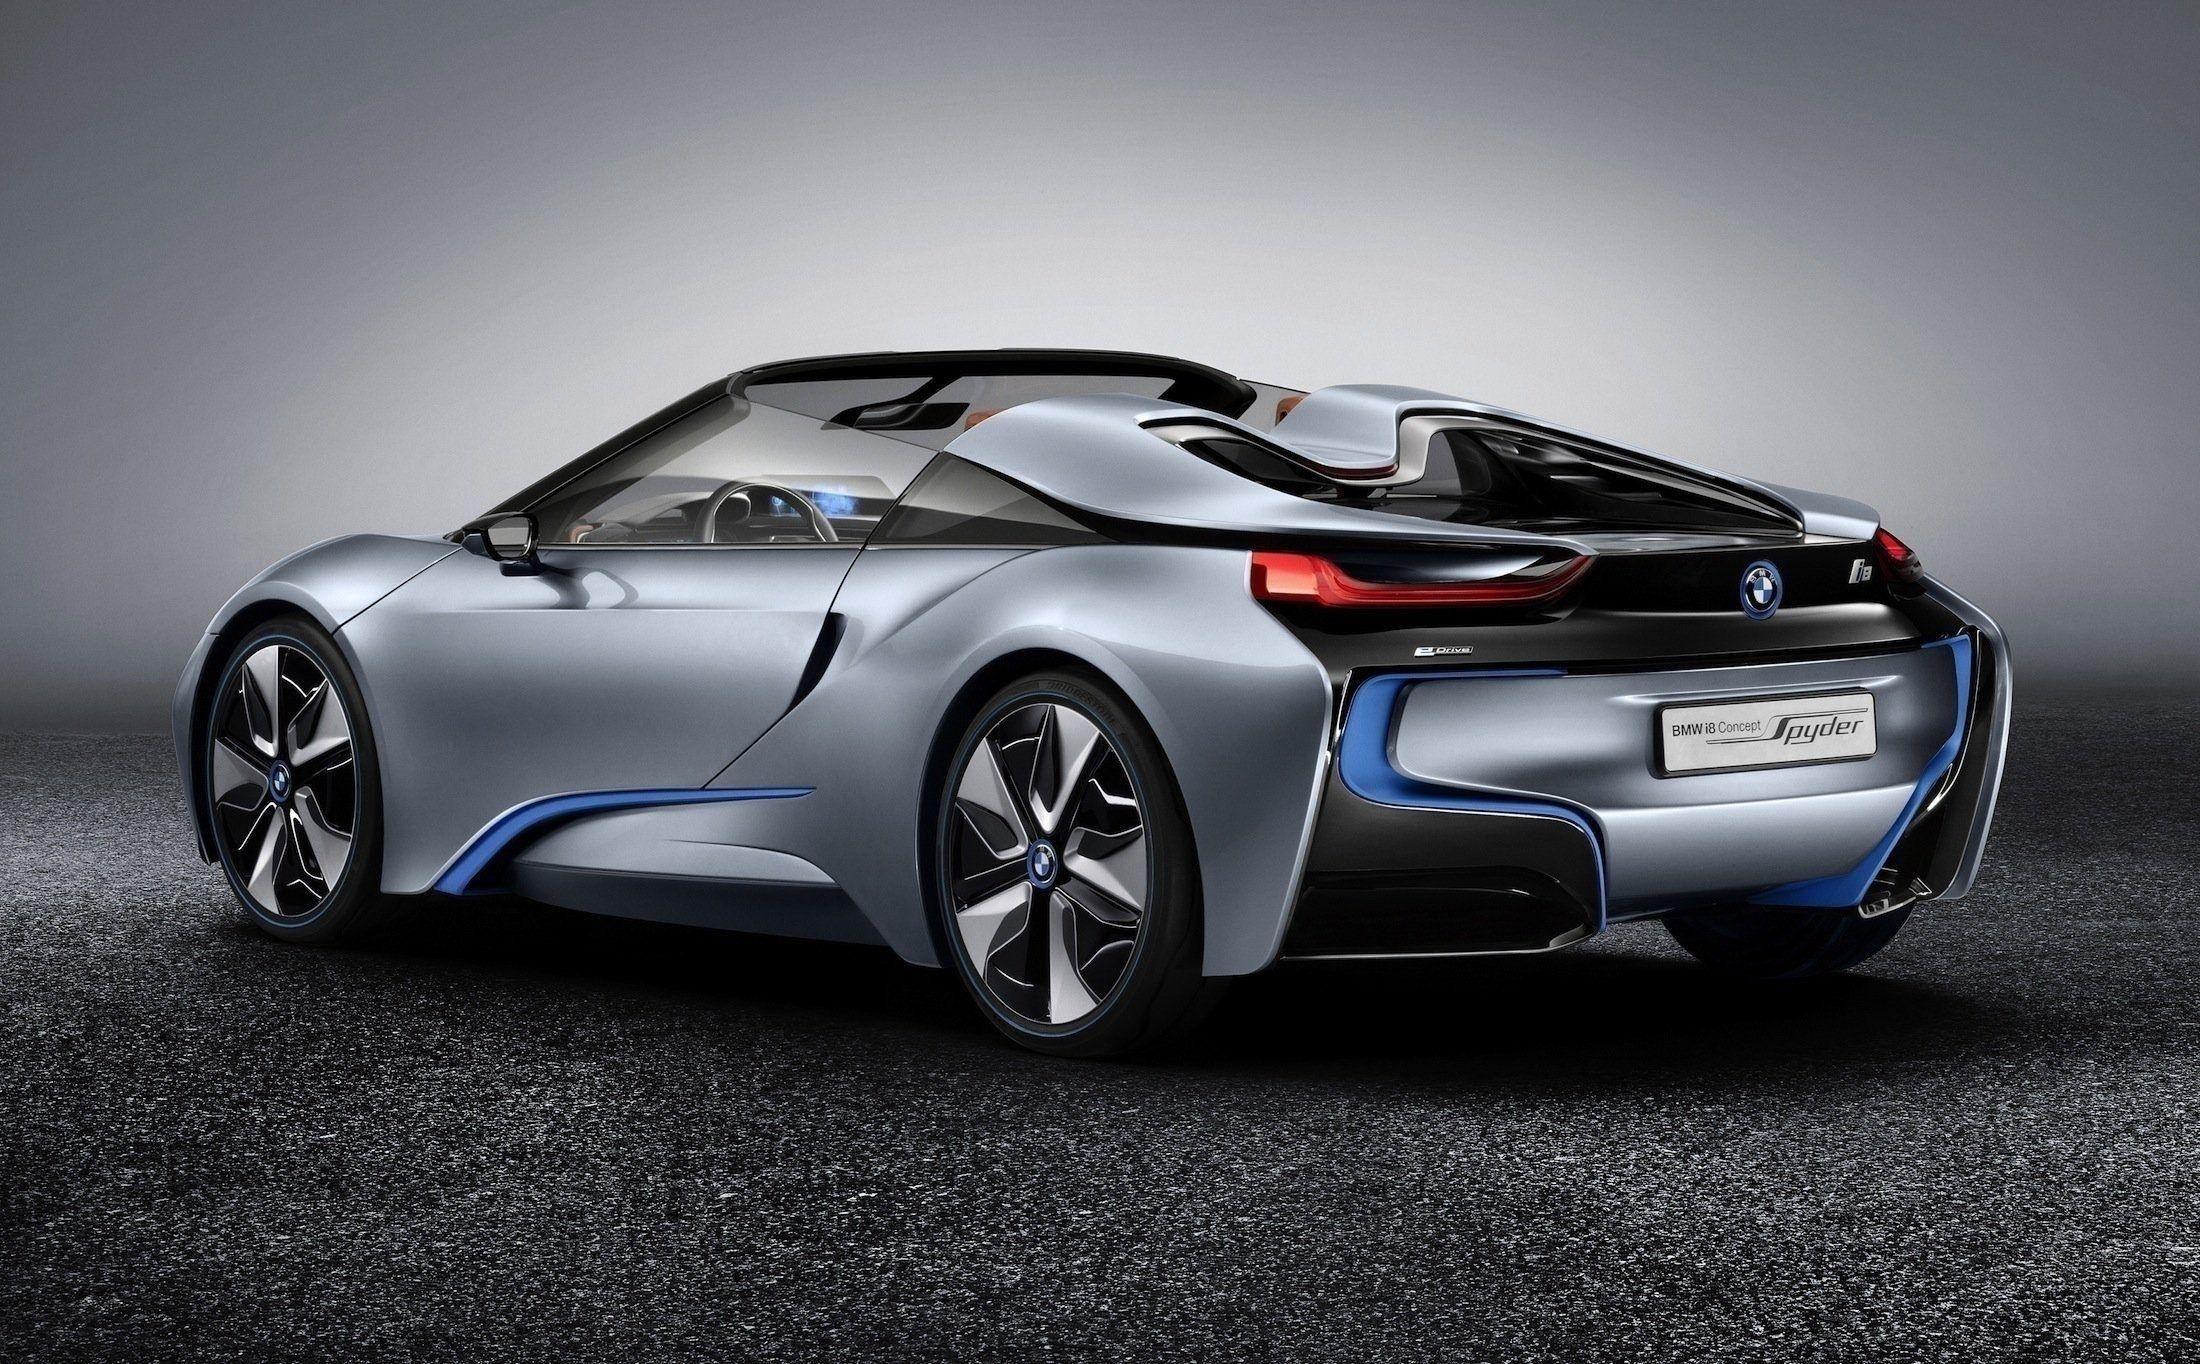 2019 Bmw I9 Specs And Review Car 2018 2019 Within 2019 Bmw I9